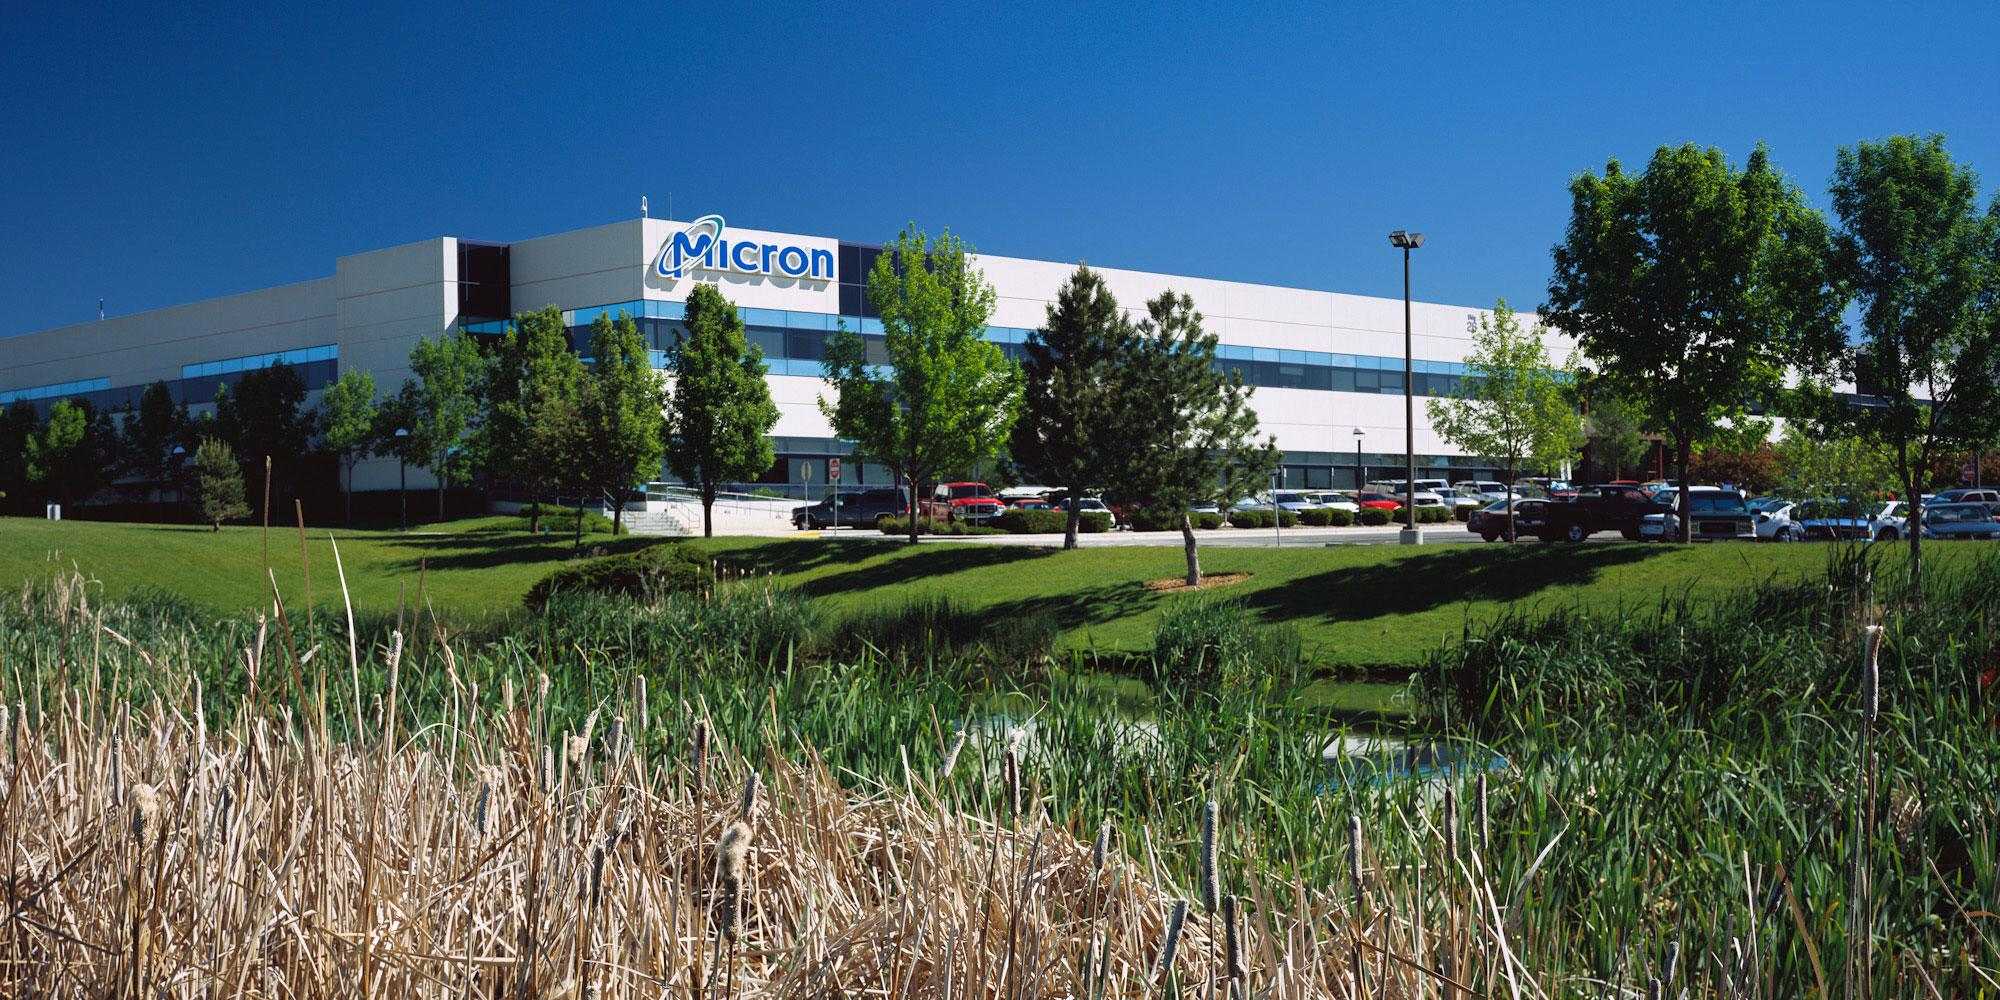 Micron's Profits Tumble, With More Pain to Come